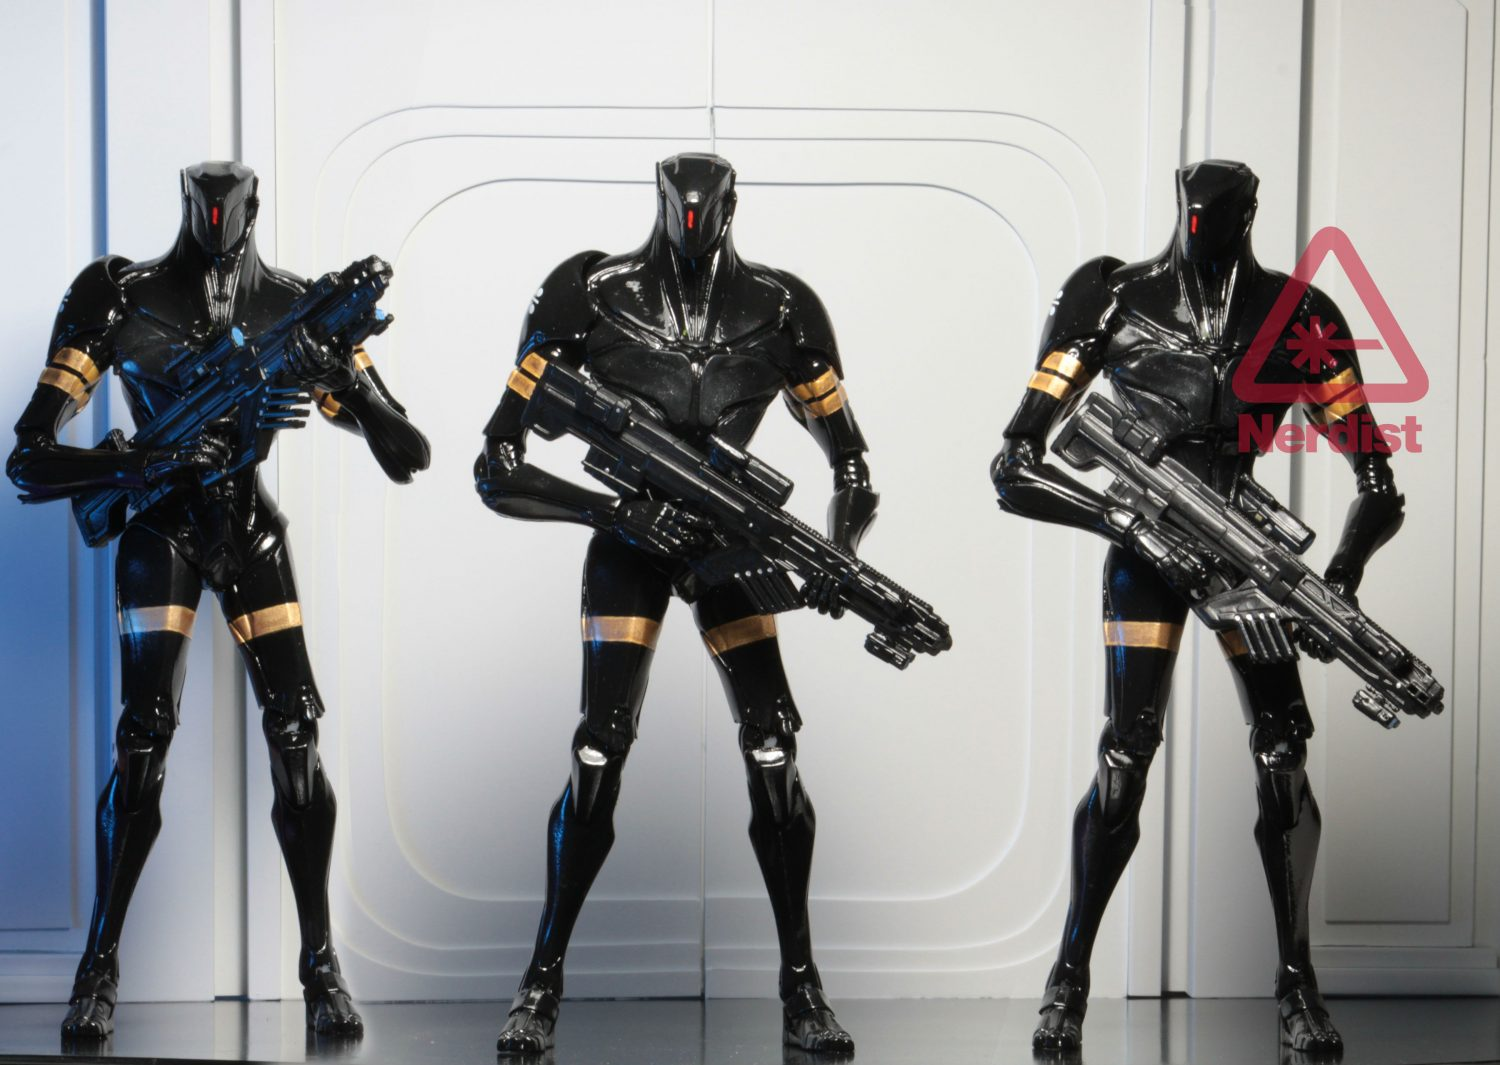 NECA-Toys-Valerian-And-The-City-Of-A-Thousand-Planets-Figures-4.jpg